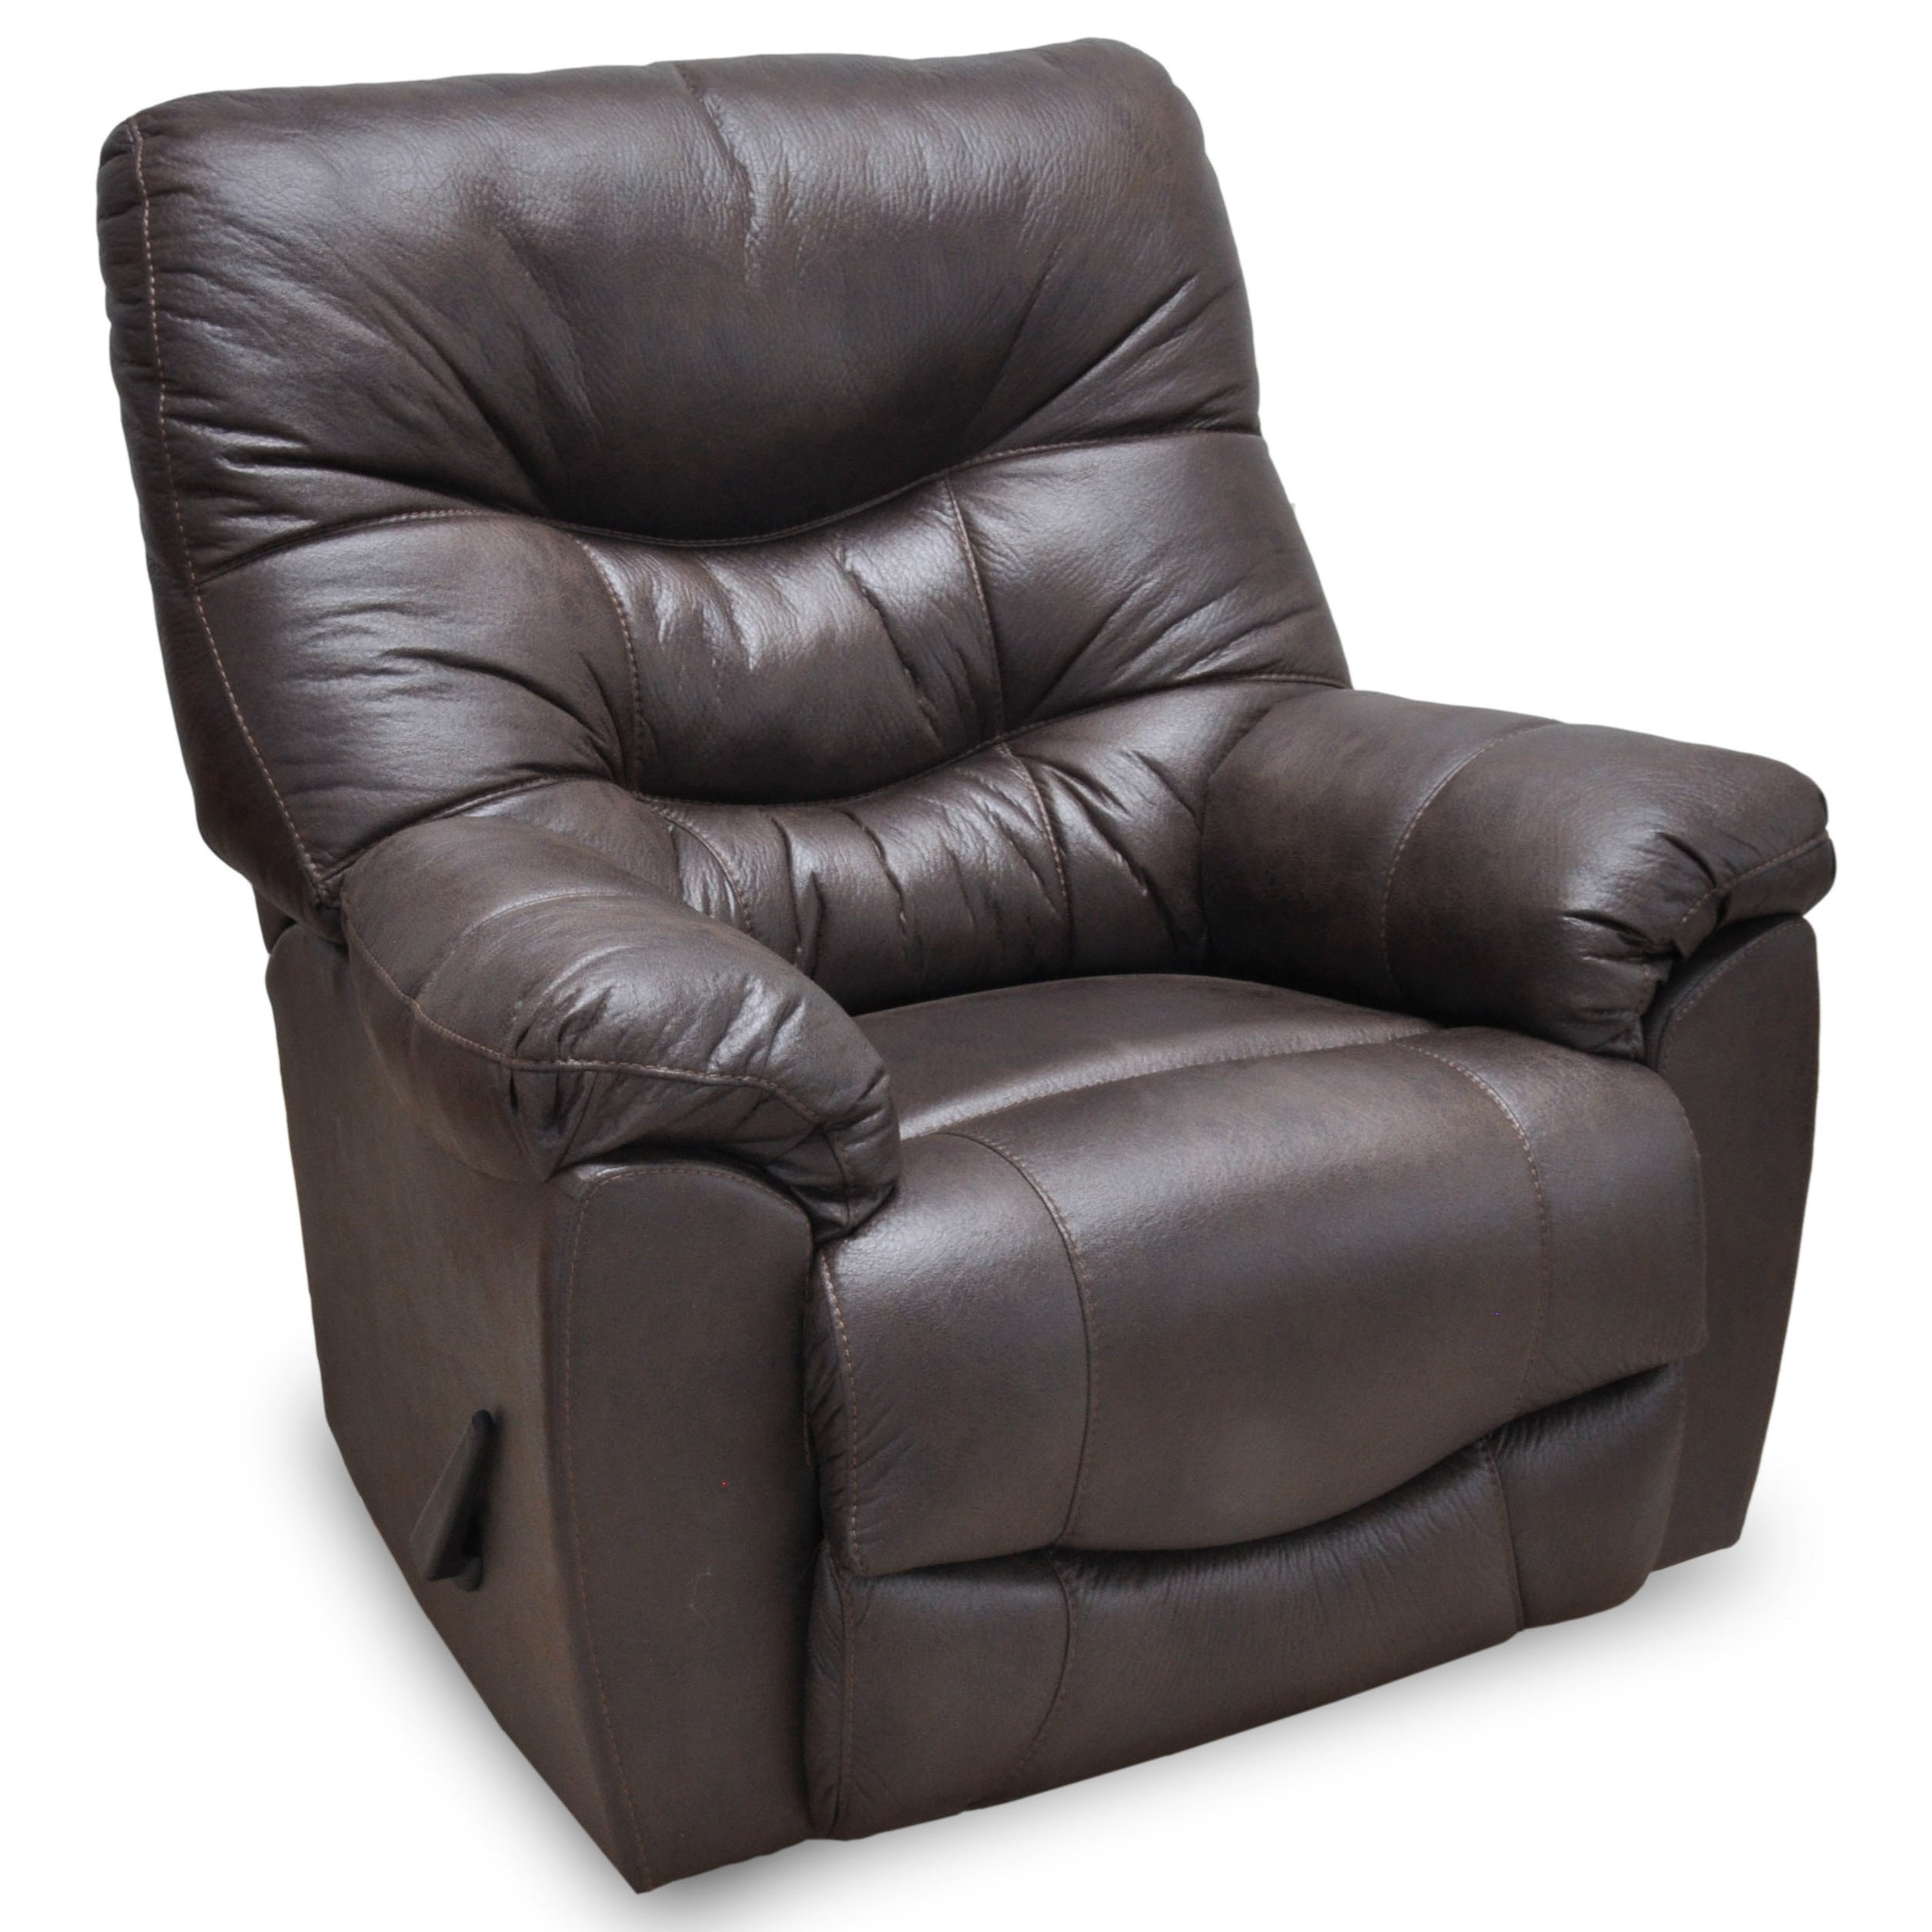 Franklin Recliners Trilogy Rocker Recliner by Franklin at Wilcox Furniture